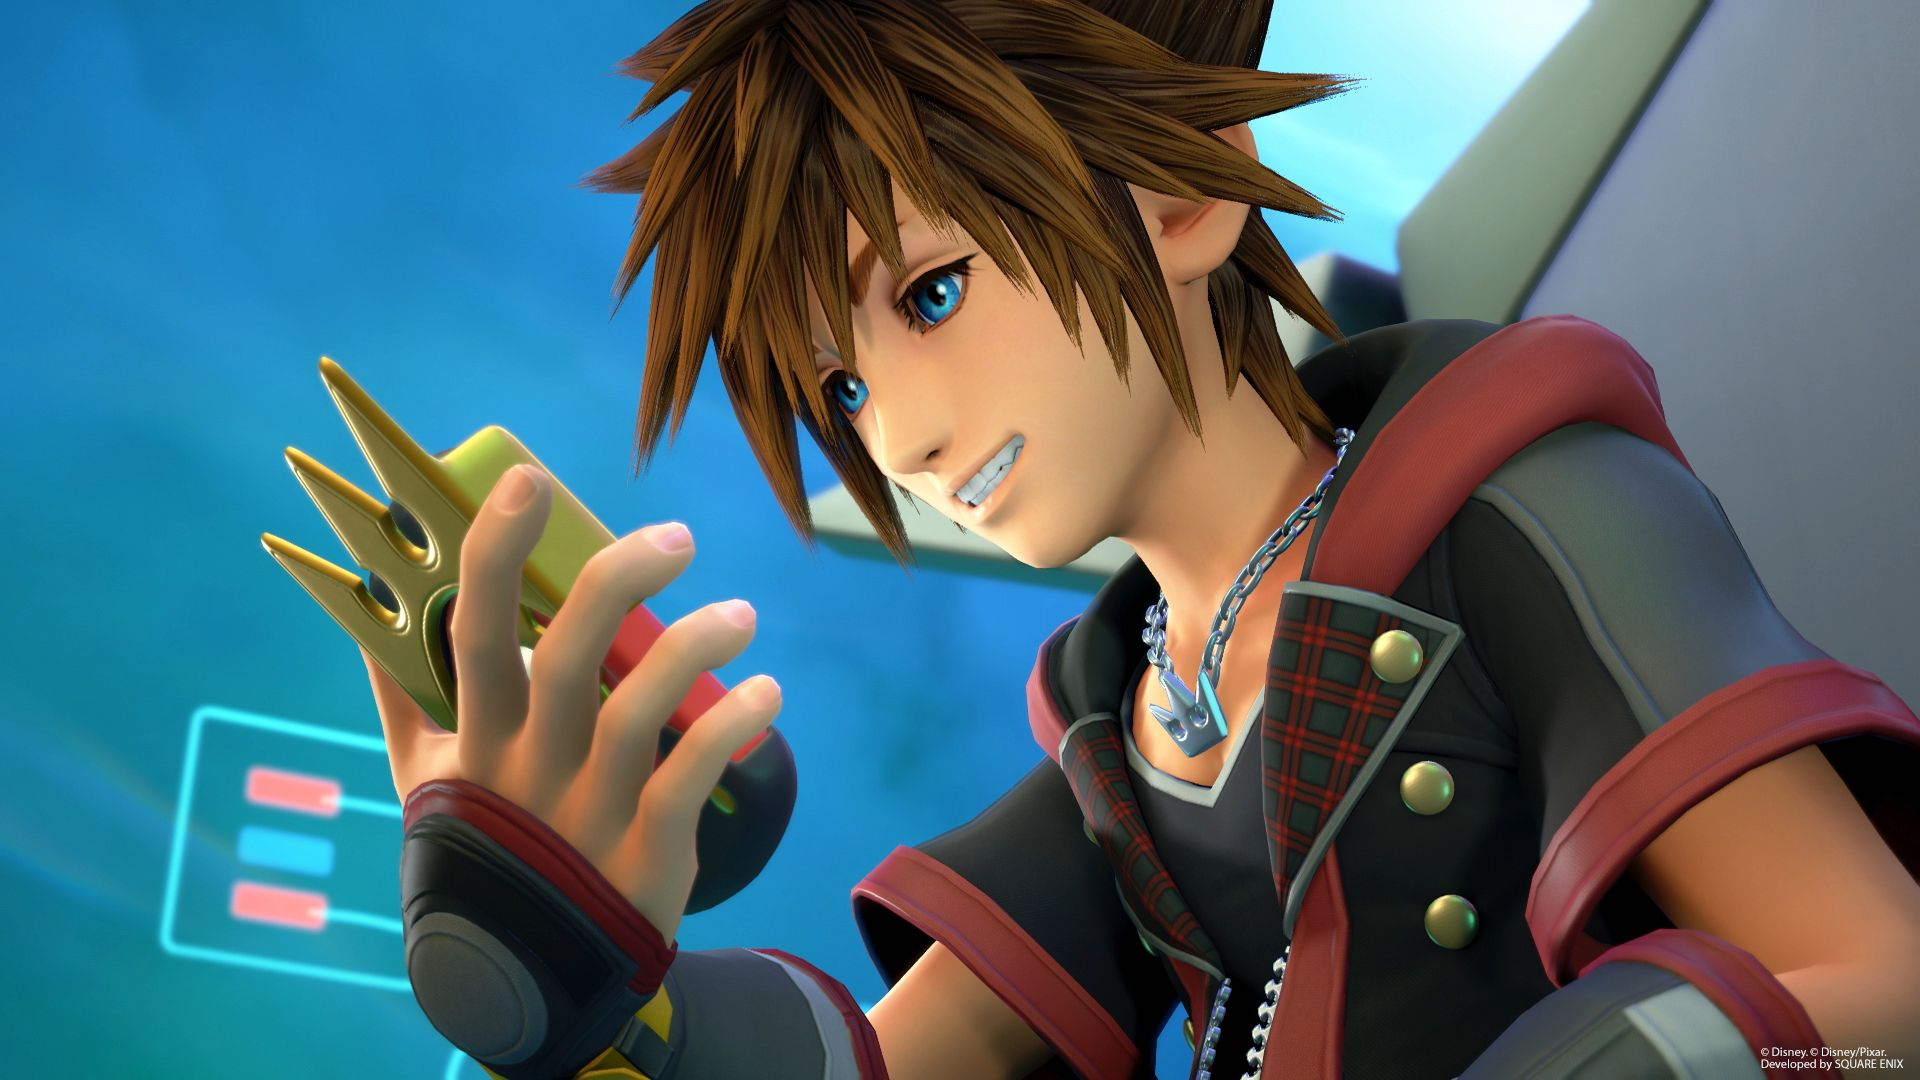 Below, you'll find the full list of achievements and trophies that can be earned in Kingdom Hearts 3.